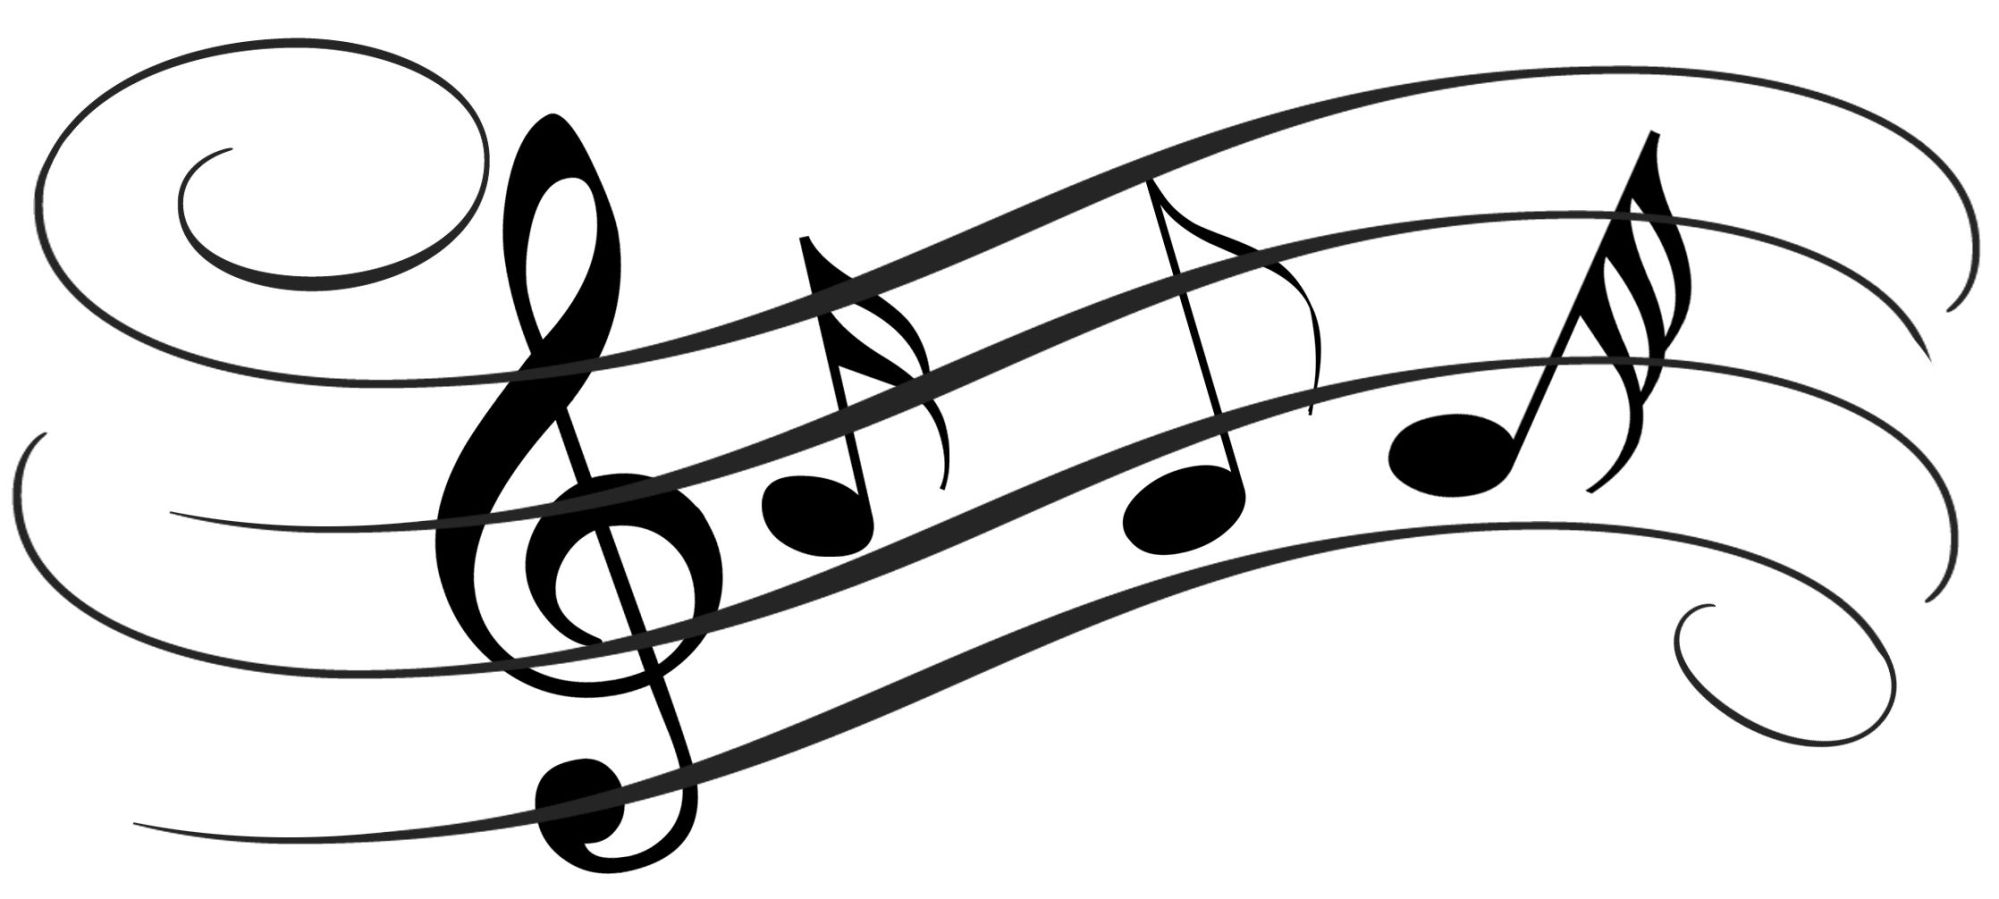 hight resolution of 20 k pop songs that will unle musical notes clipart